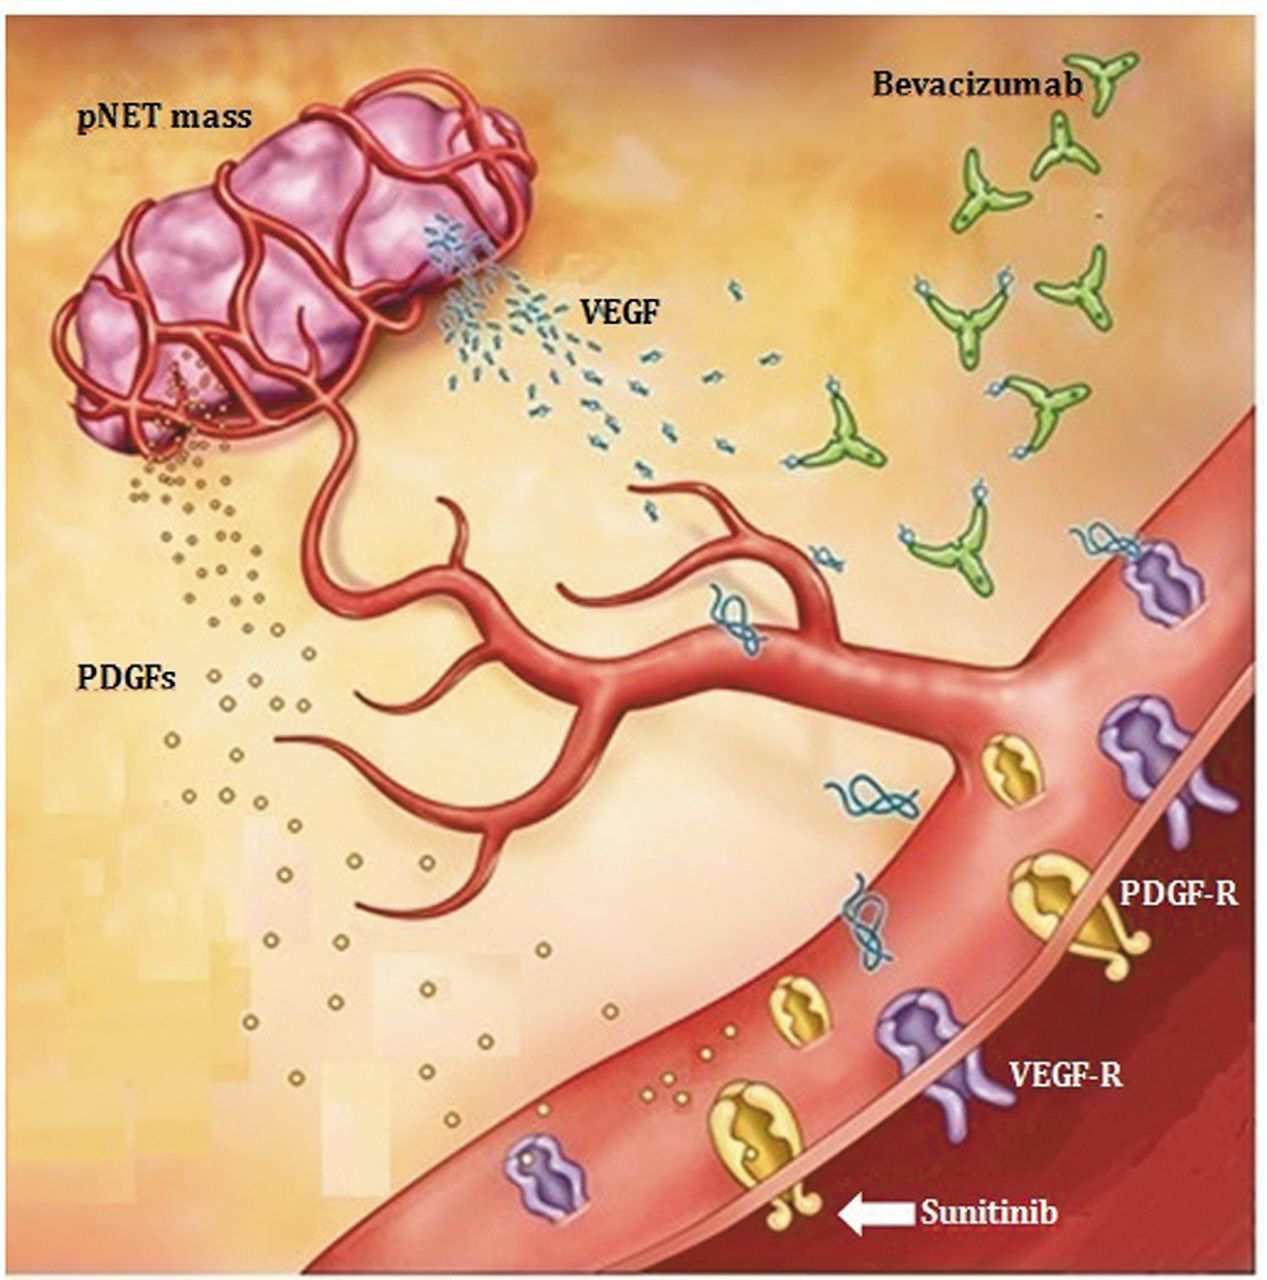 Frontiers | Combining Radiotherapy With Anti-angiogenic